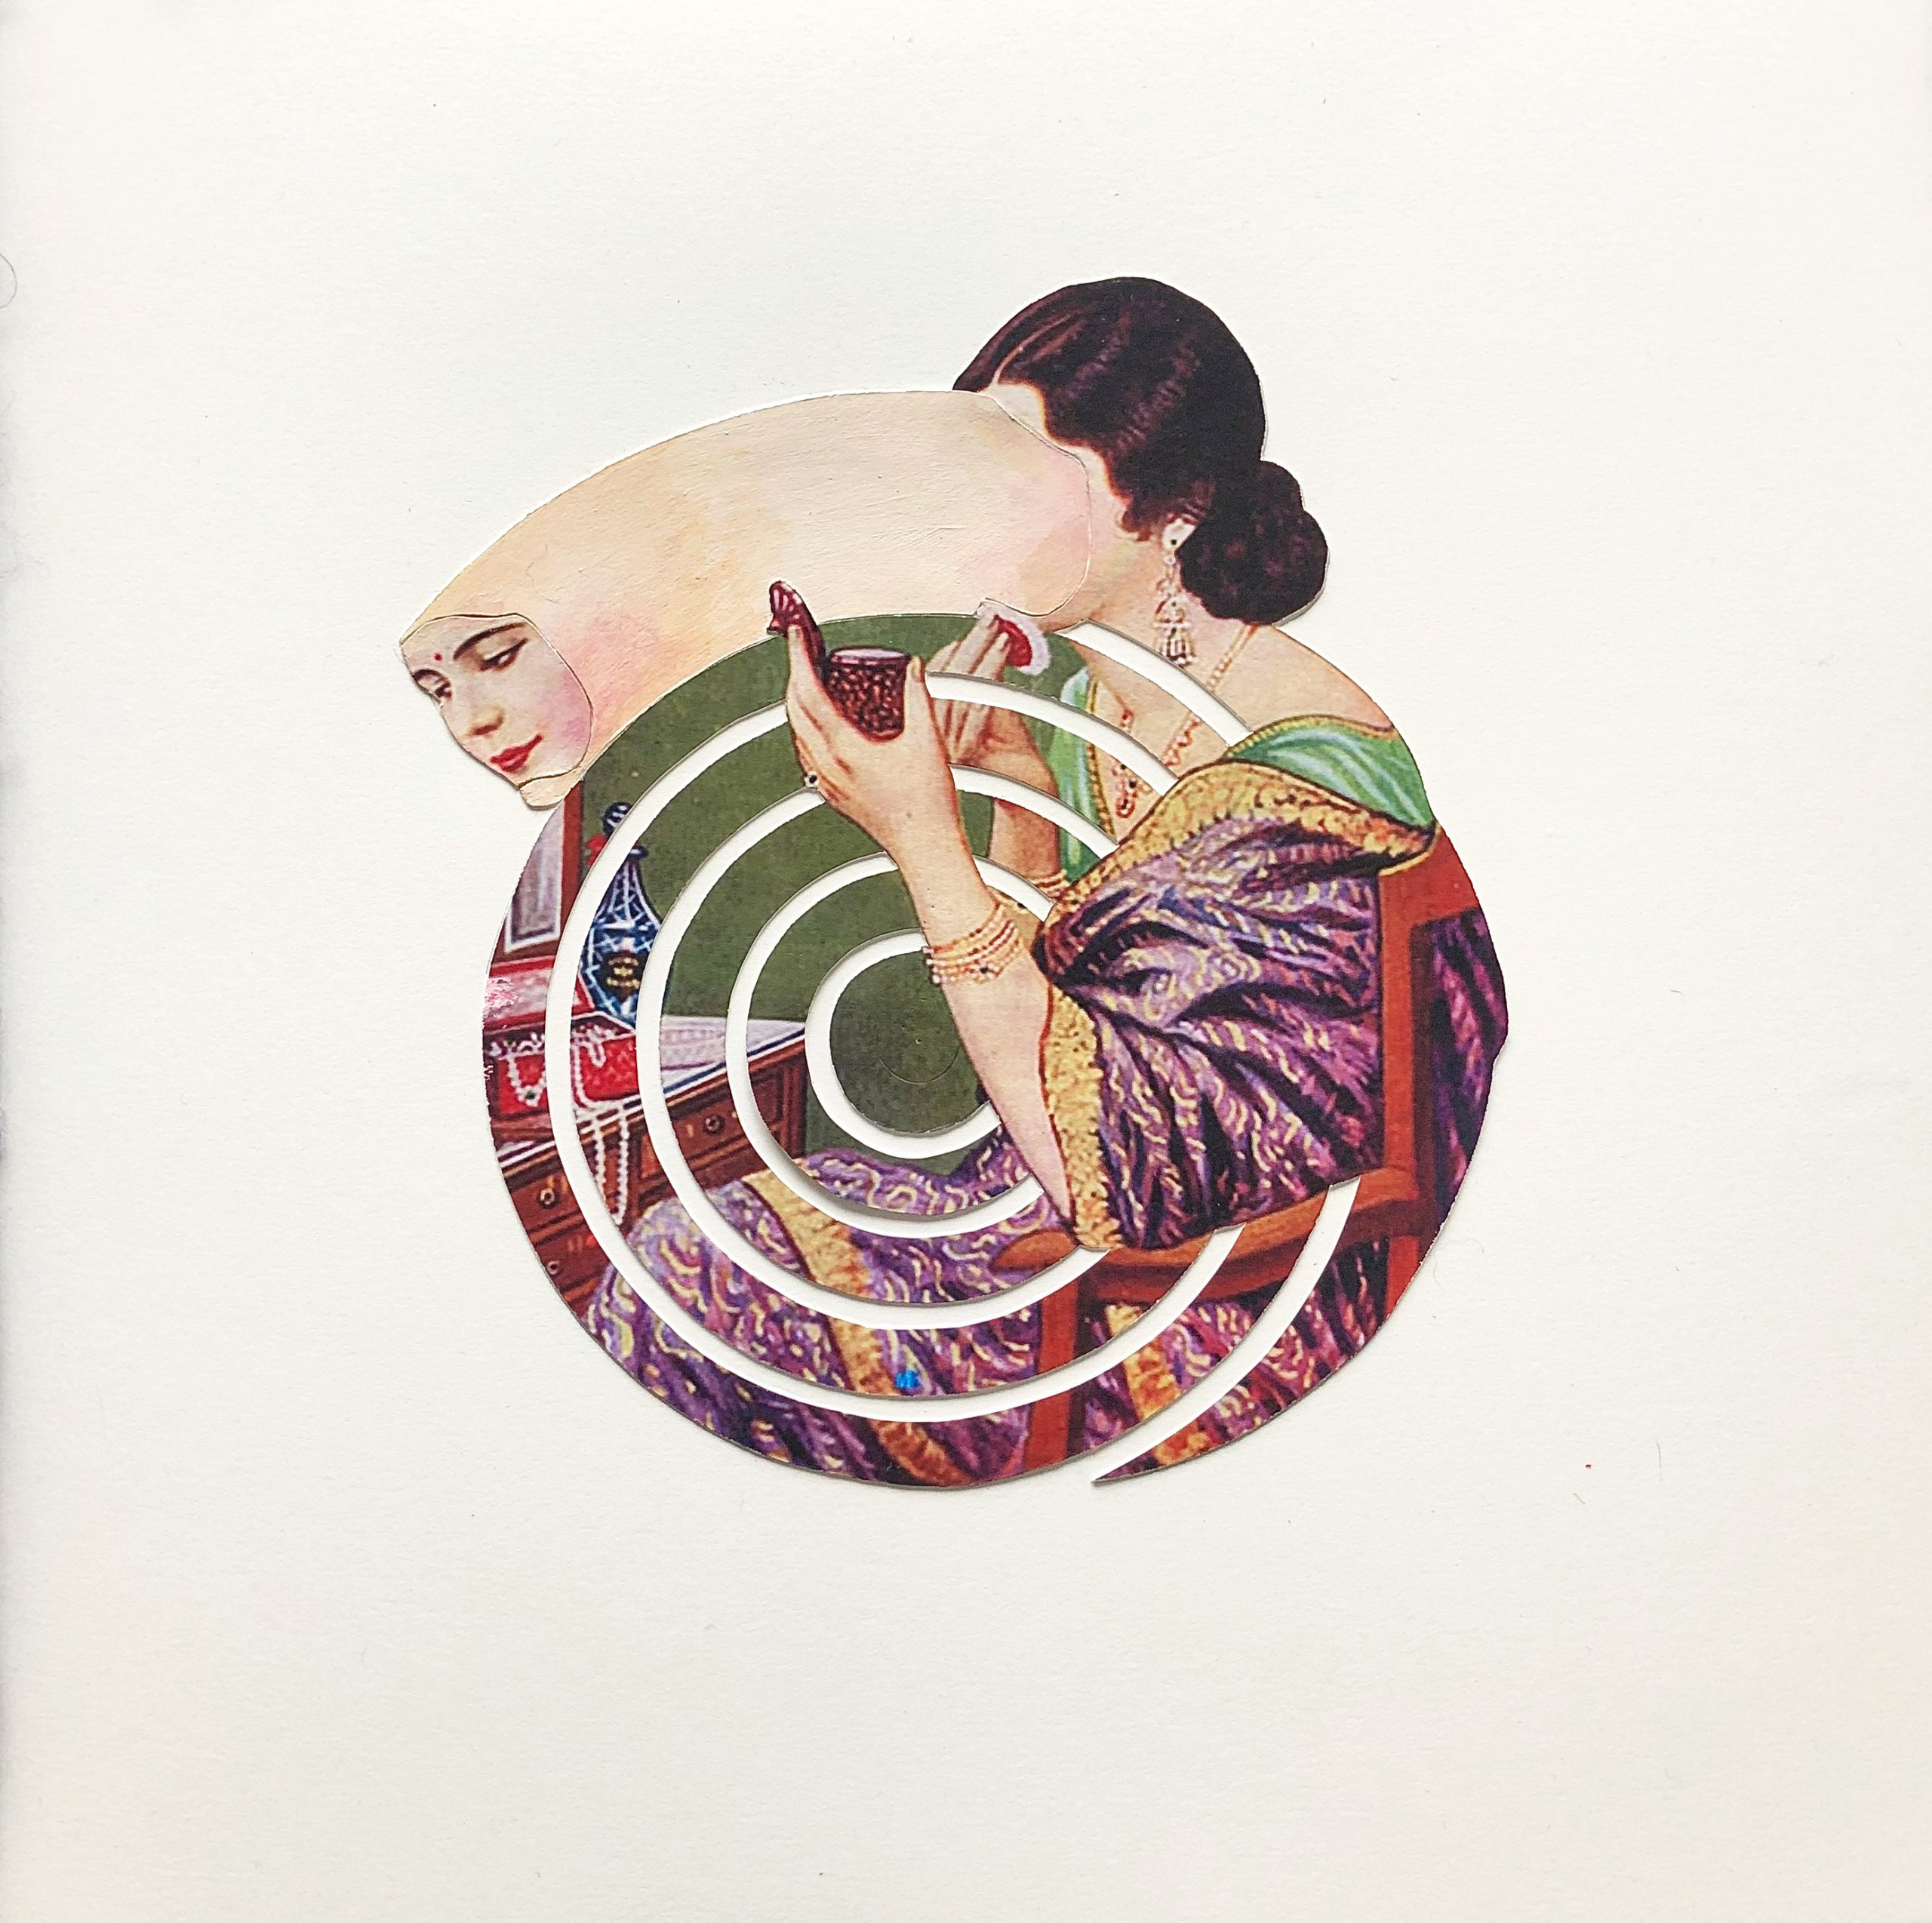 distorted illustration of an Indian woman applying makeup with a handheld mirror